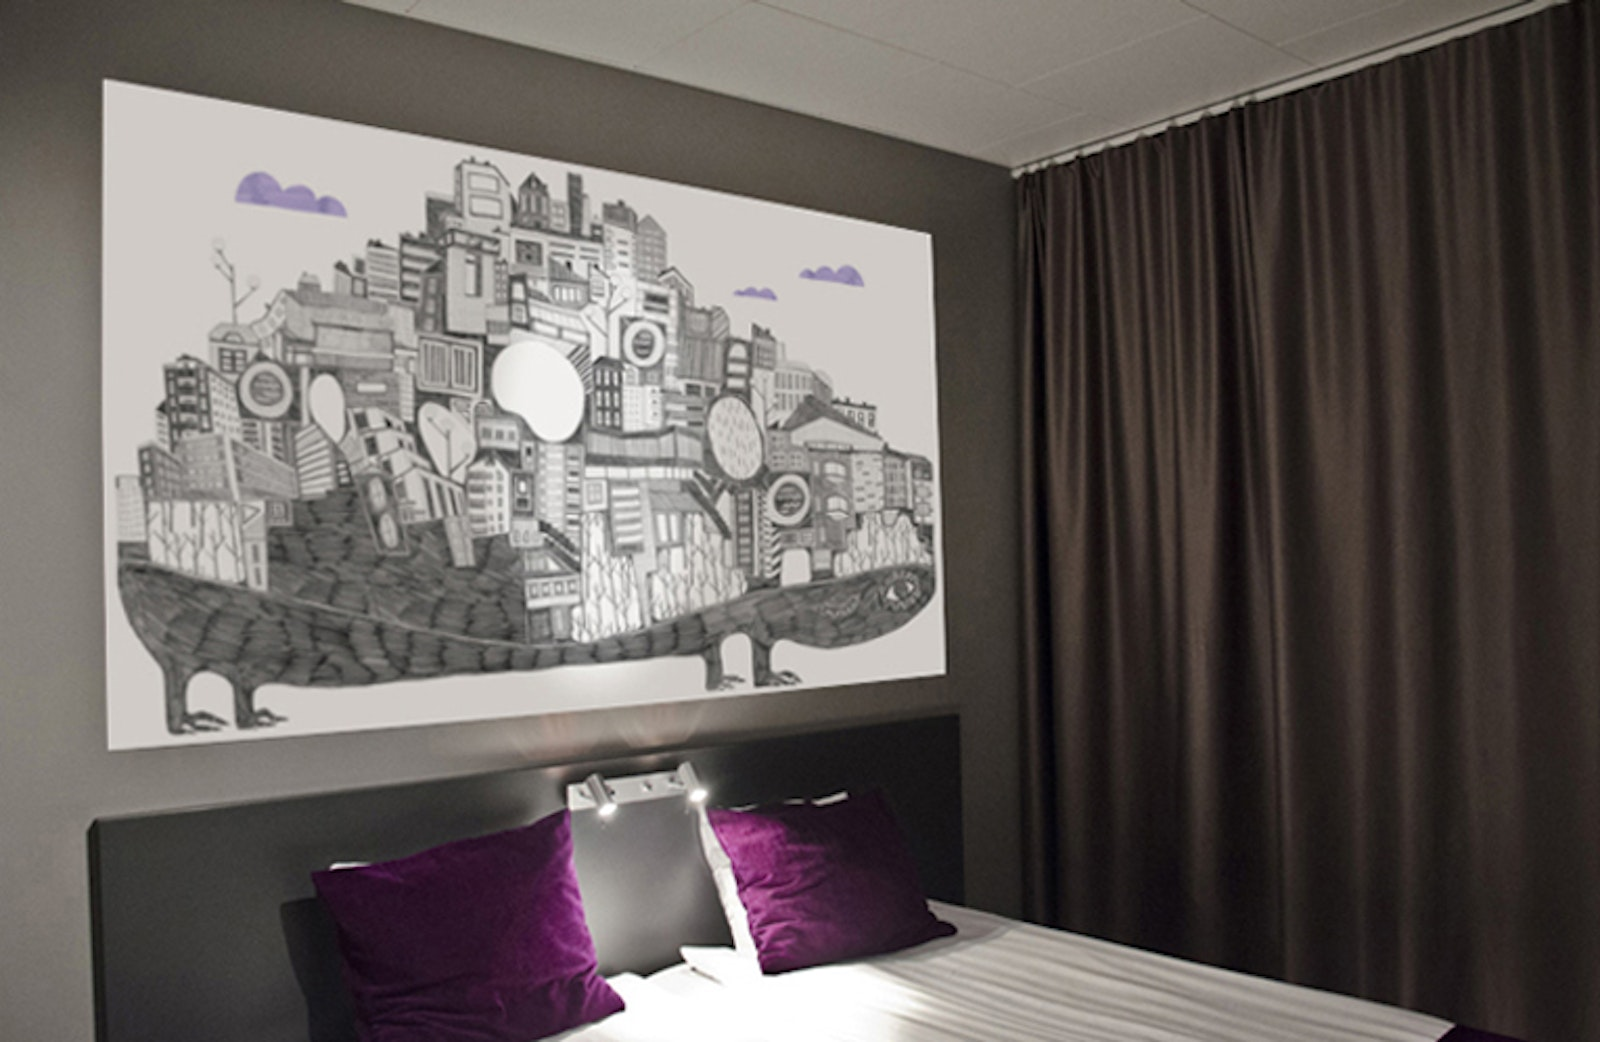 Bespoke art panels at Connect Hotel in Stockholm by Isabel Leal Bergstrand